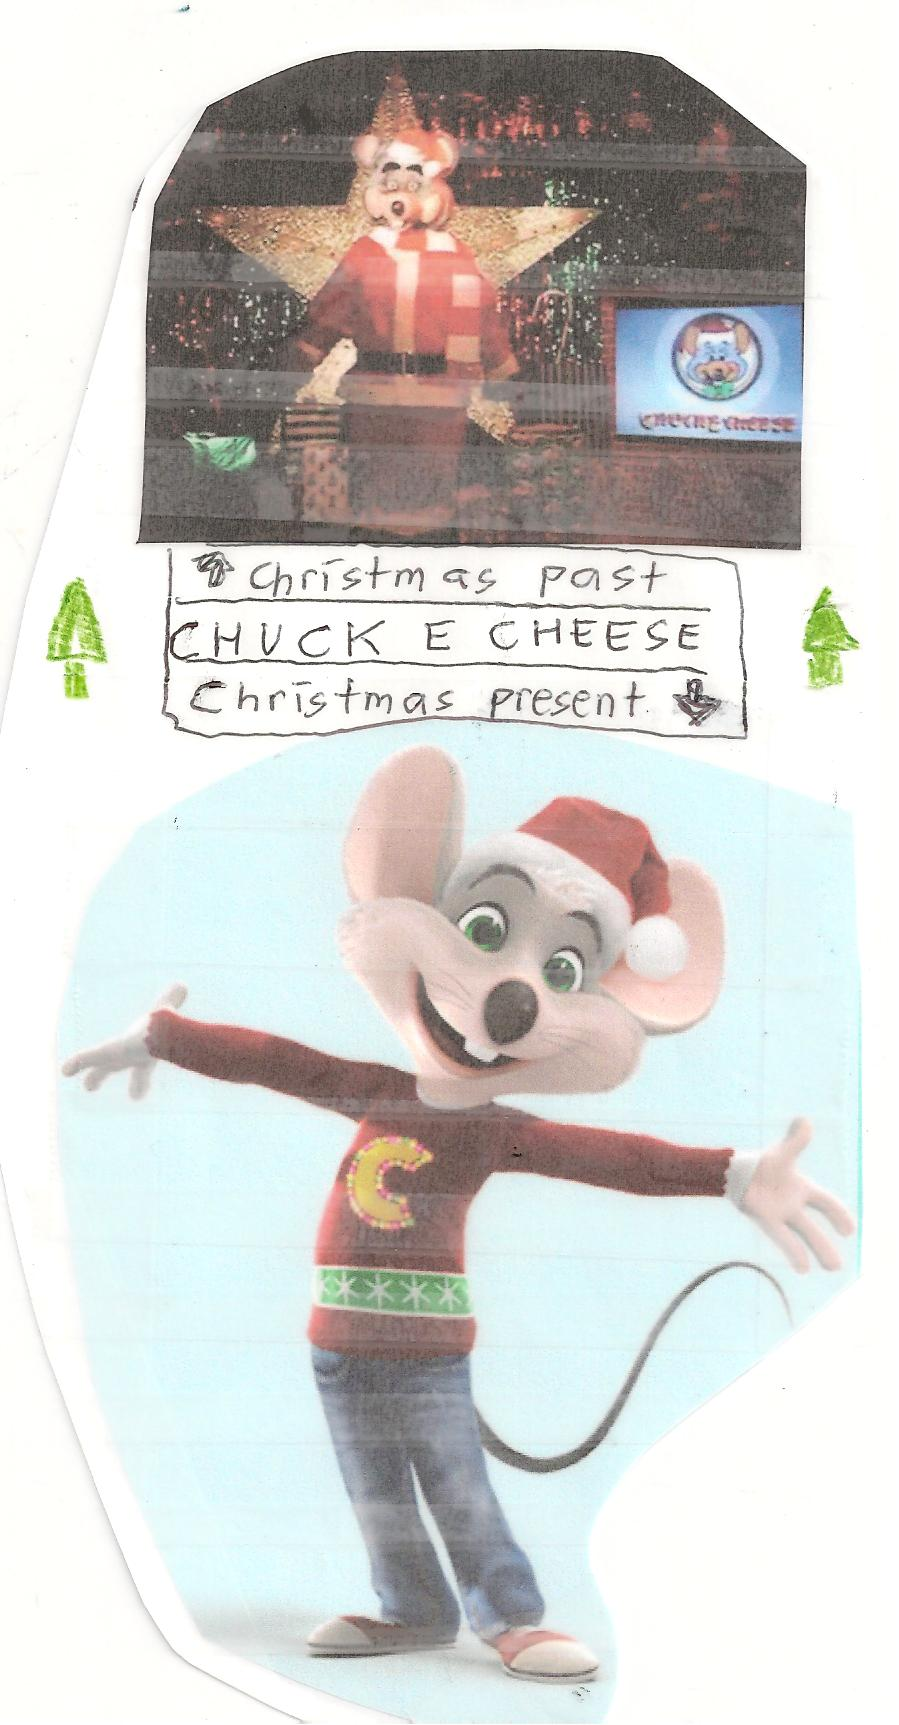 Chuck E Cheese Christmas.Chuck E Cheese Christmas Past And Present By Dth1971 On